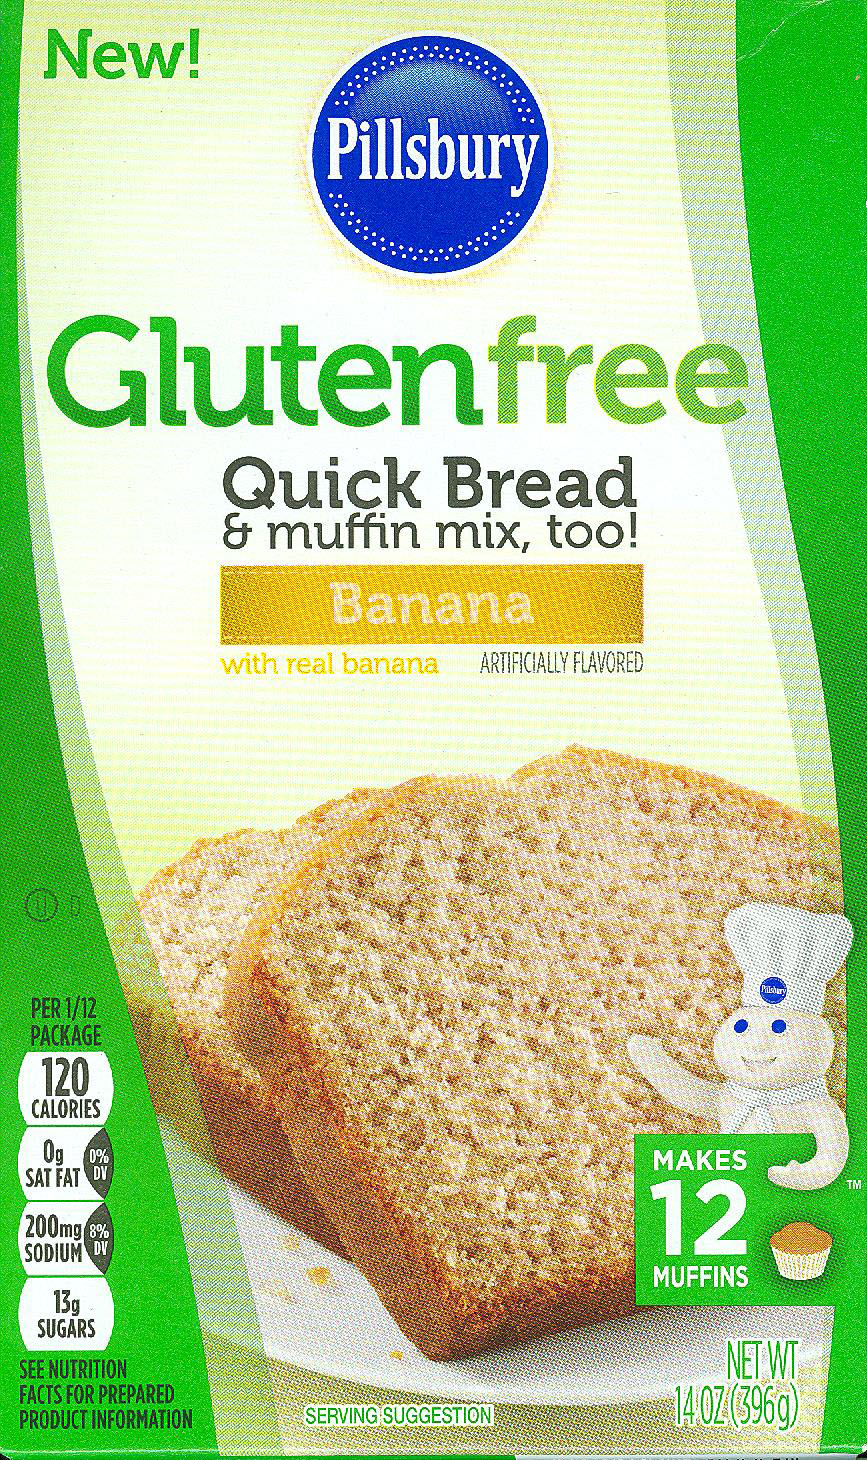 Pillsbury Quick Bread and Muffin Mix